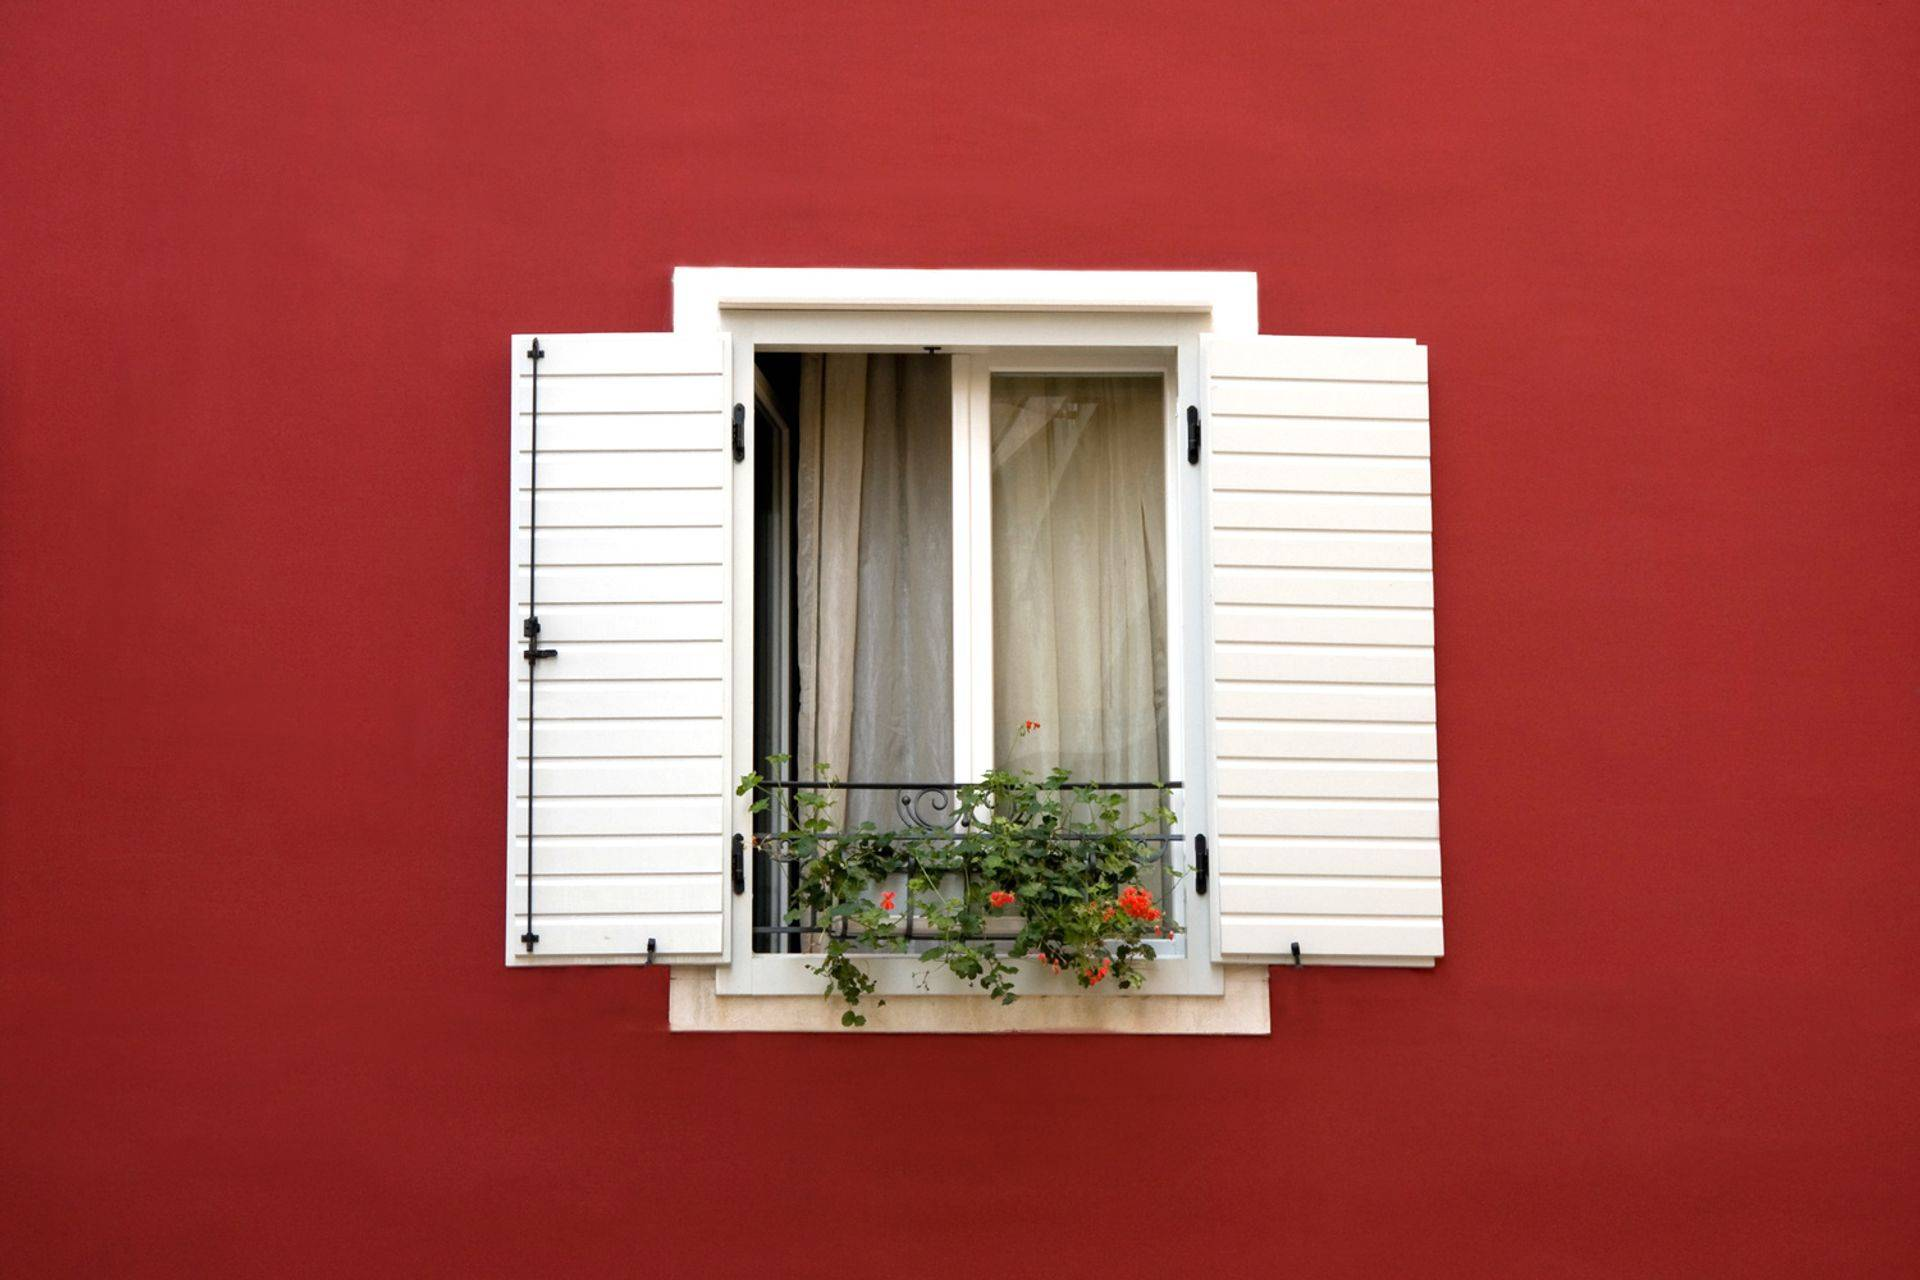 A new window set with red paint